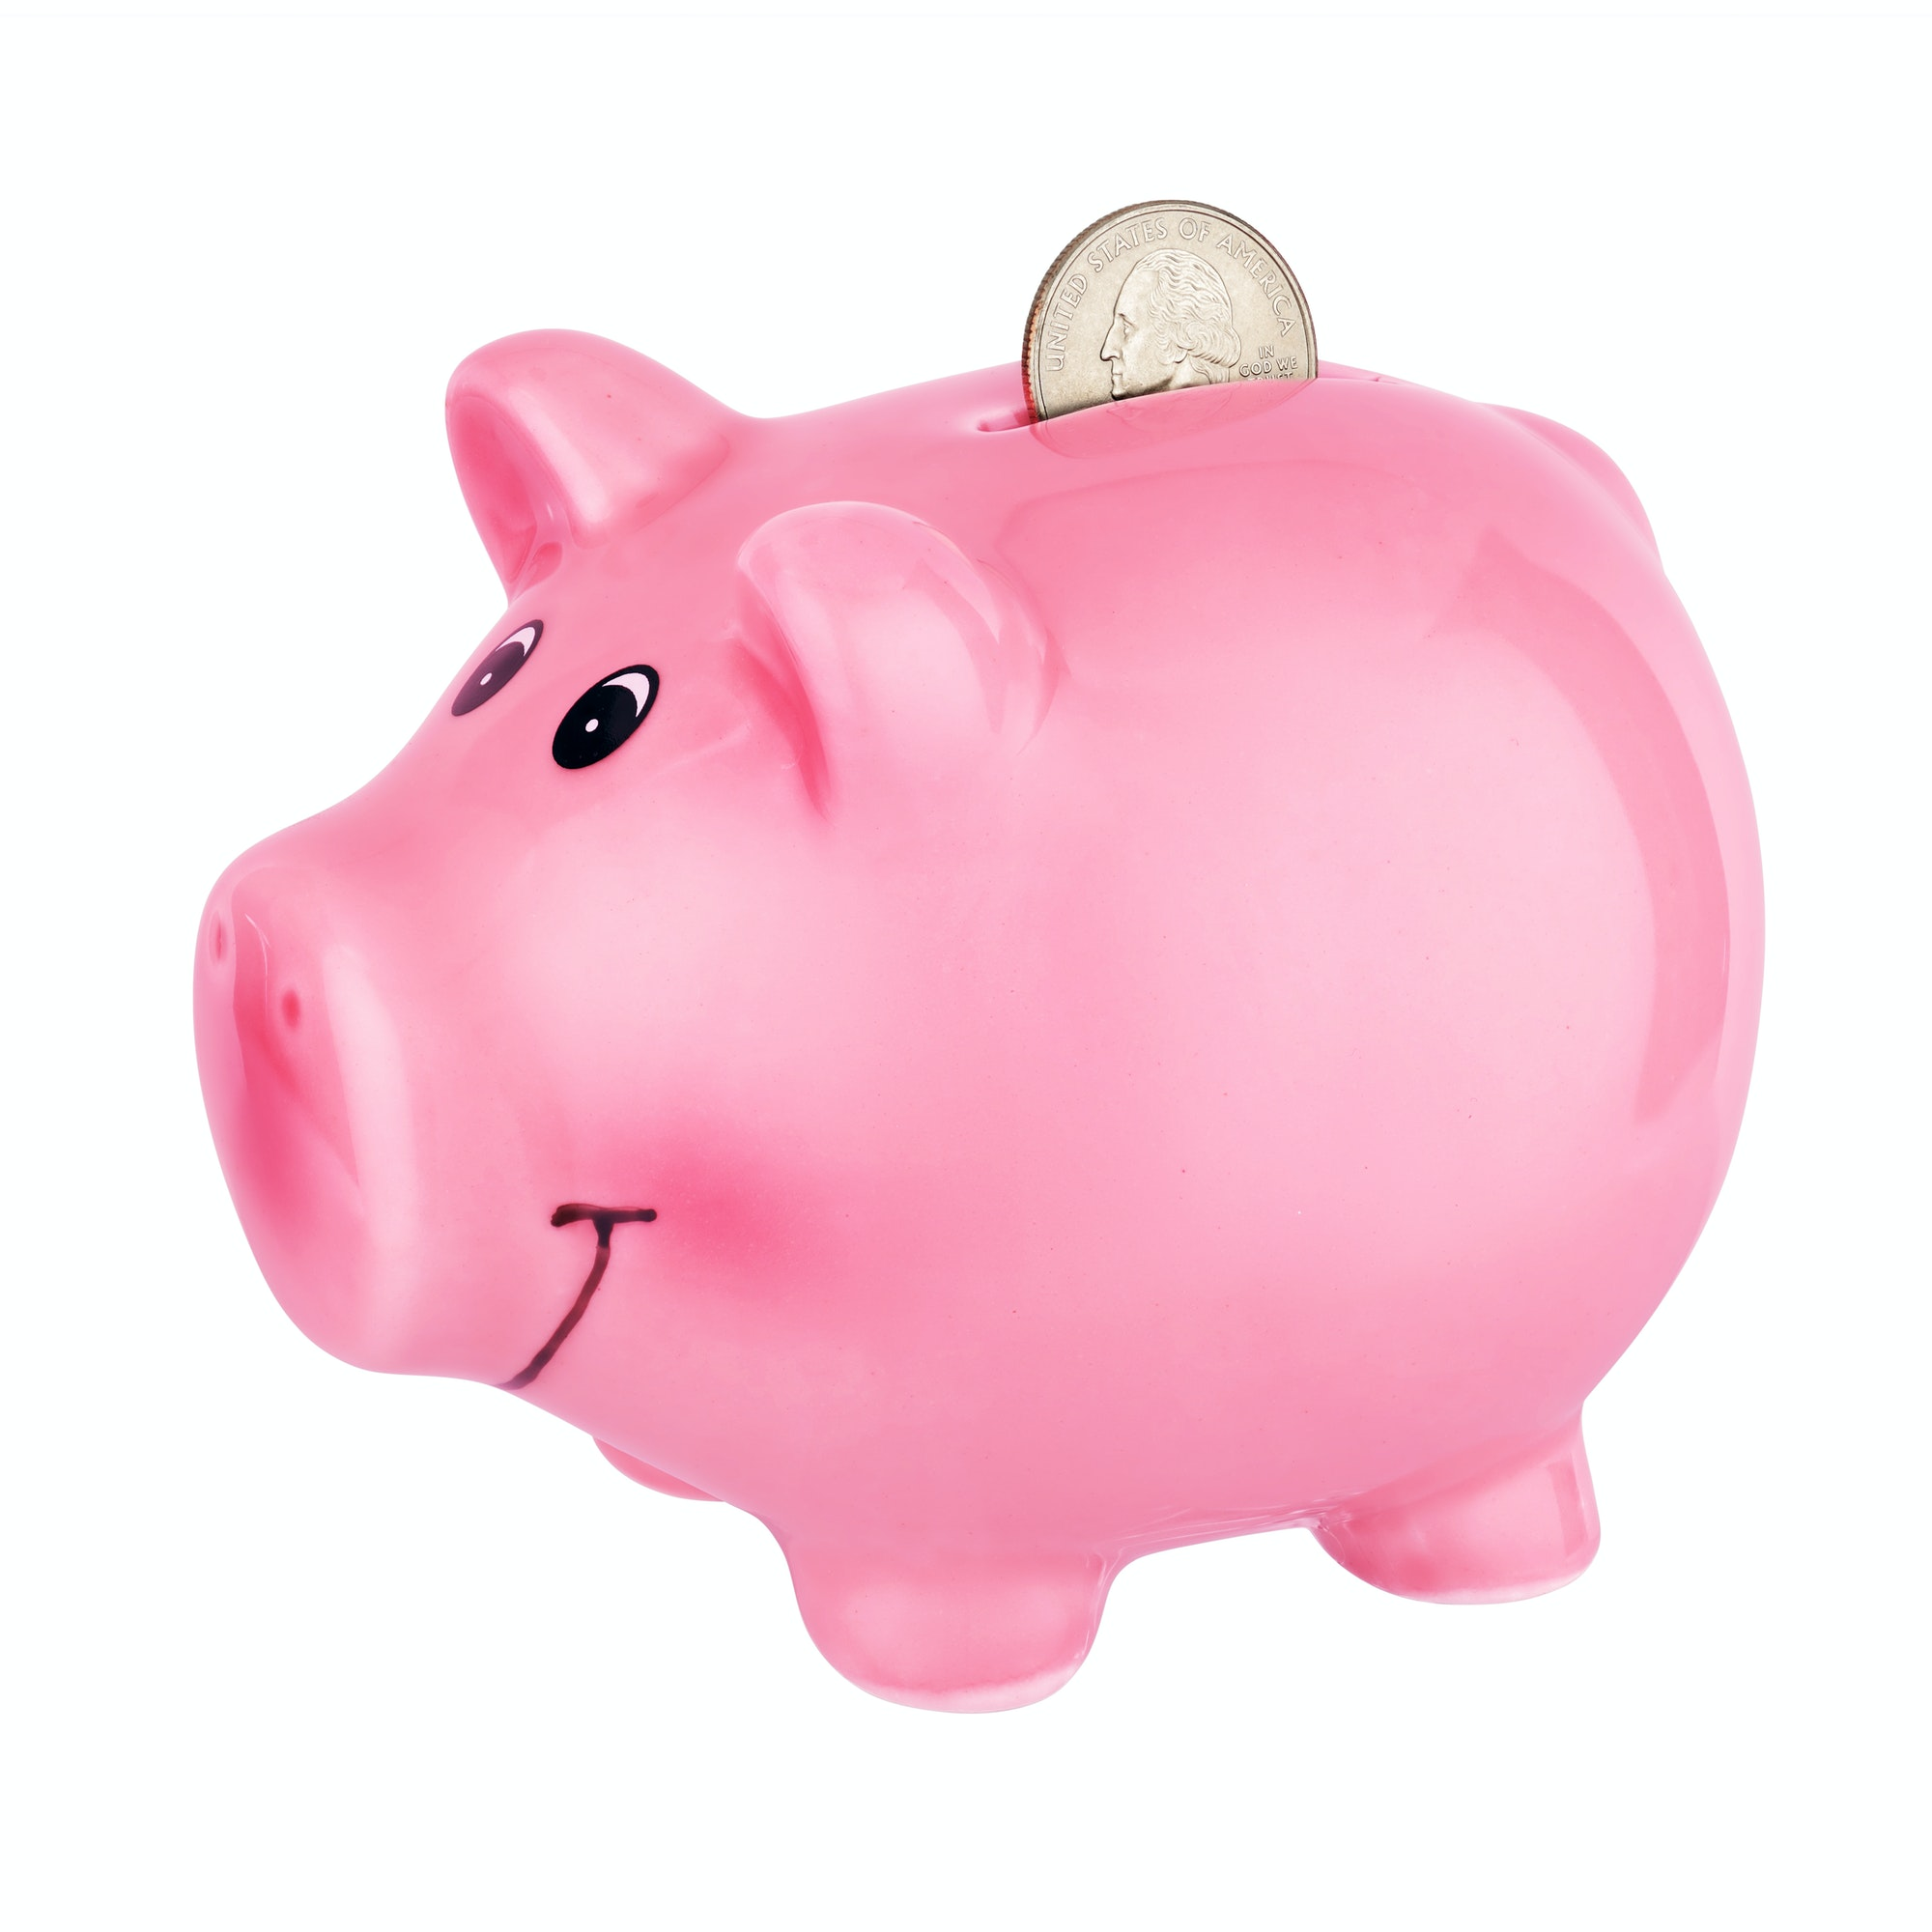 Pink piggy bank with coin isolated on white background